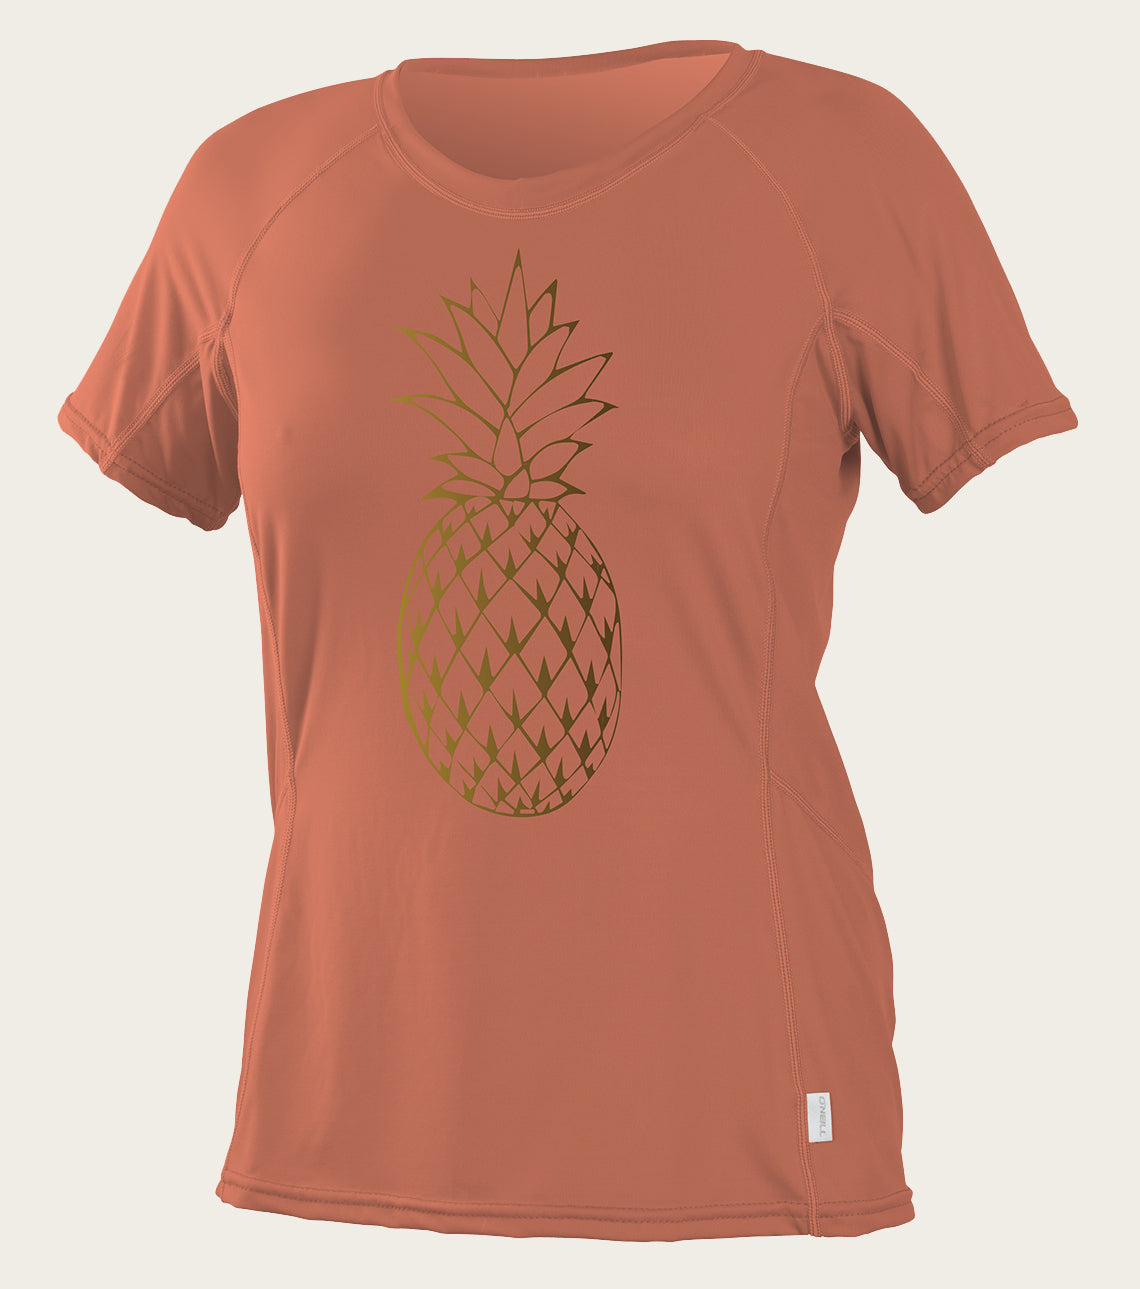 Womens Graphic S/S Sun Shirt - Coral Punch | O'Neill